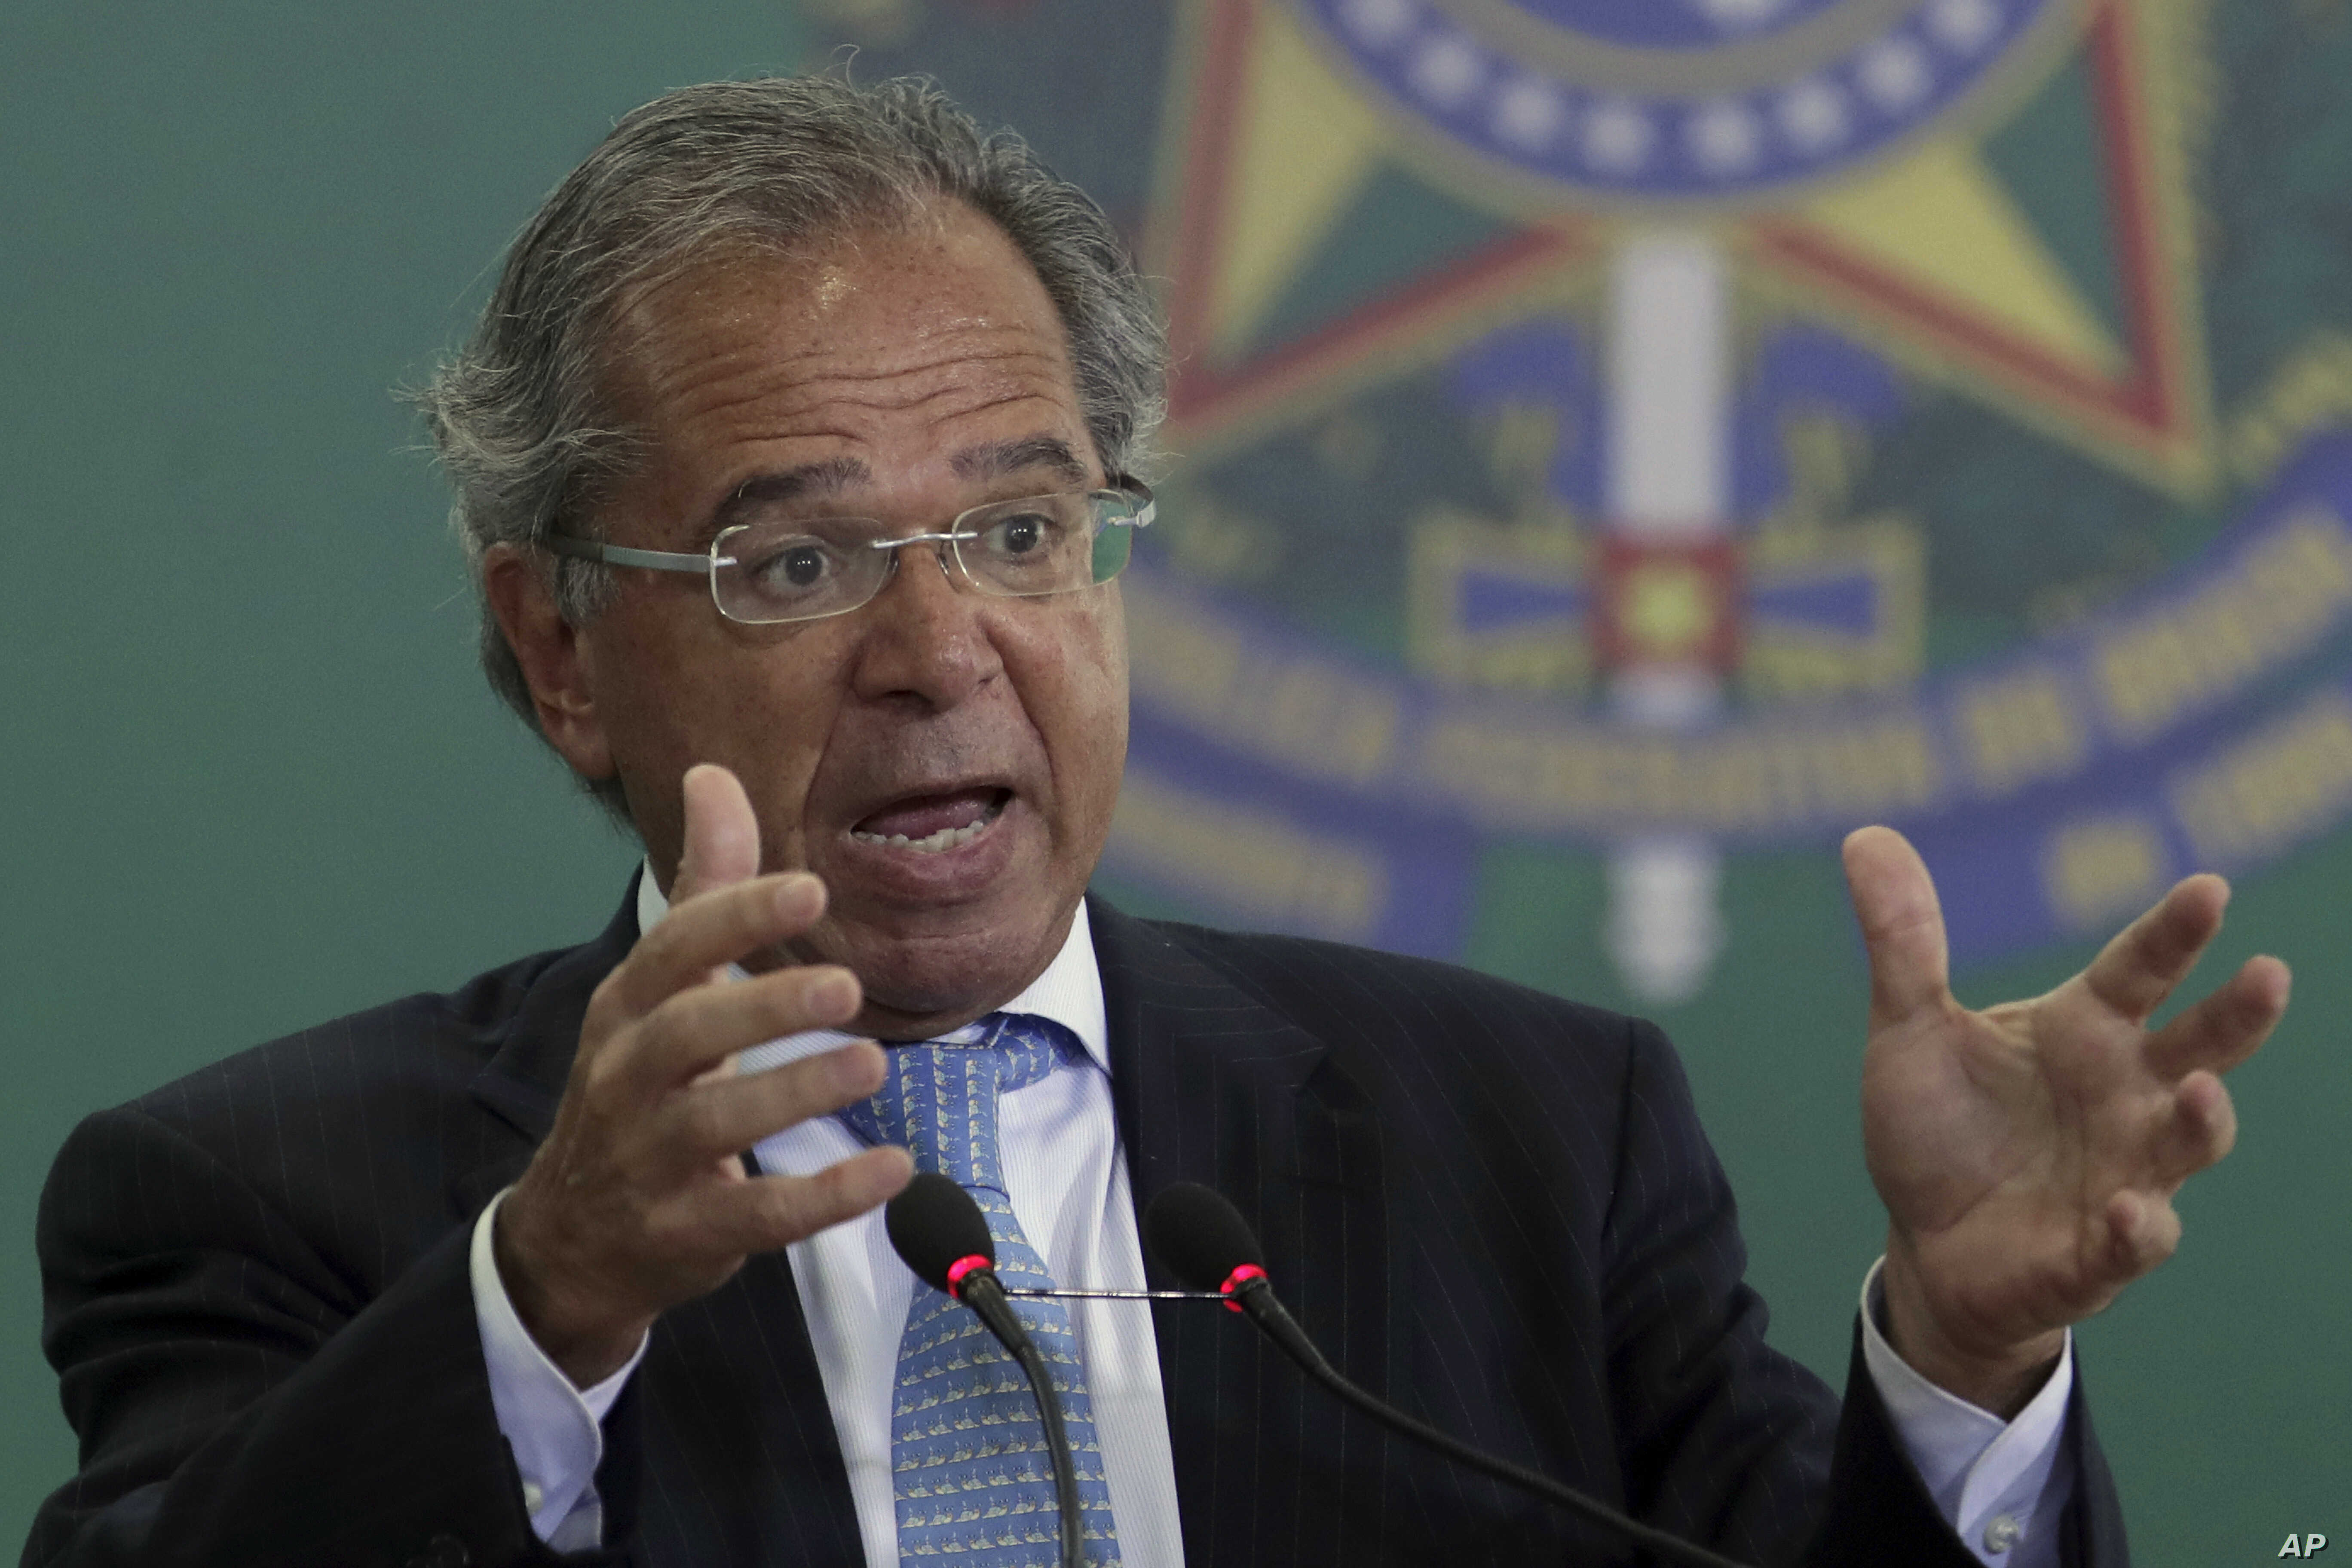 Brazil's Economy Minister Paulo Guedes speaks during a ceremony at Planalto presidential palace in Brasilia, Brazil, Jan. 7, 2019.